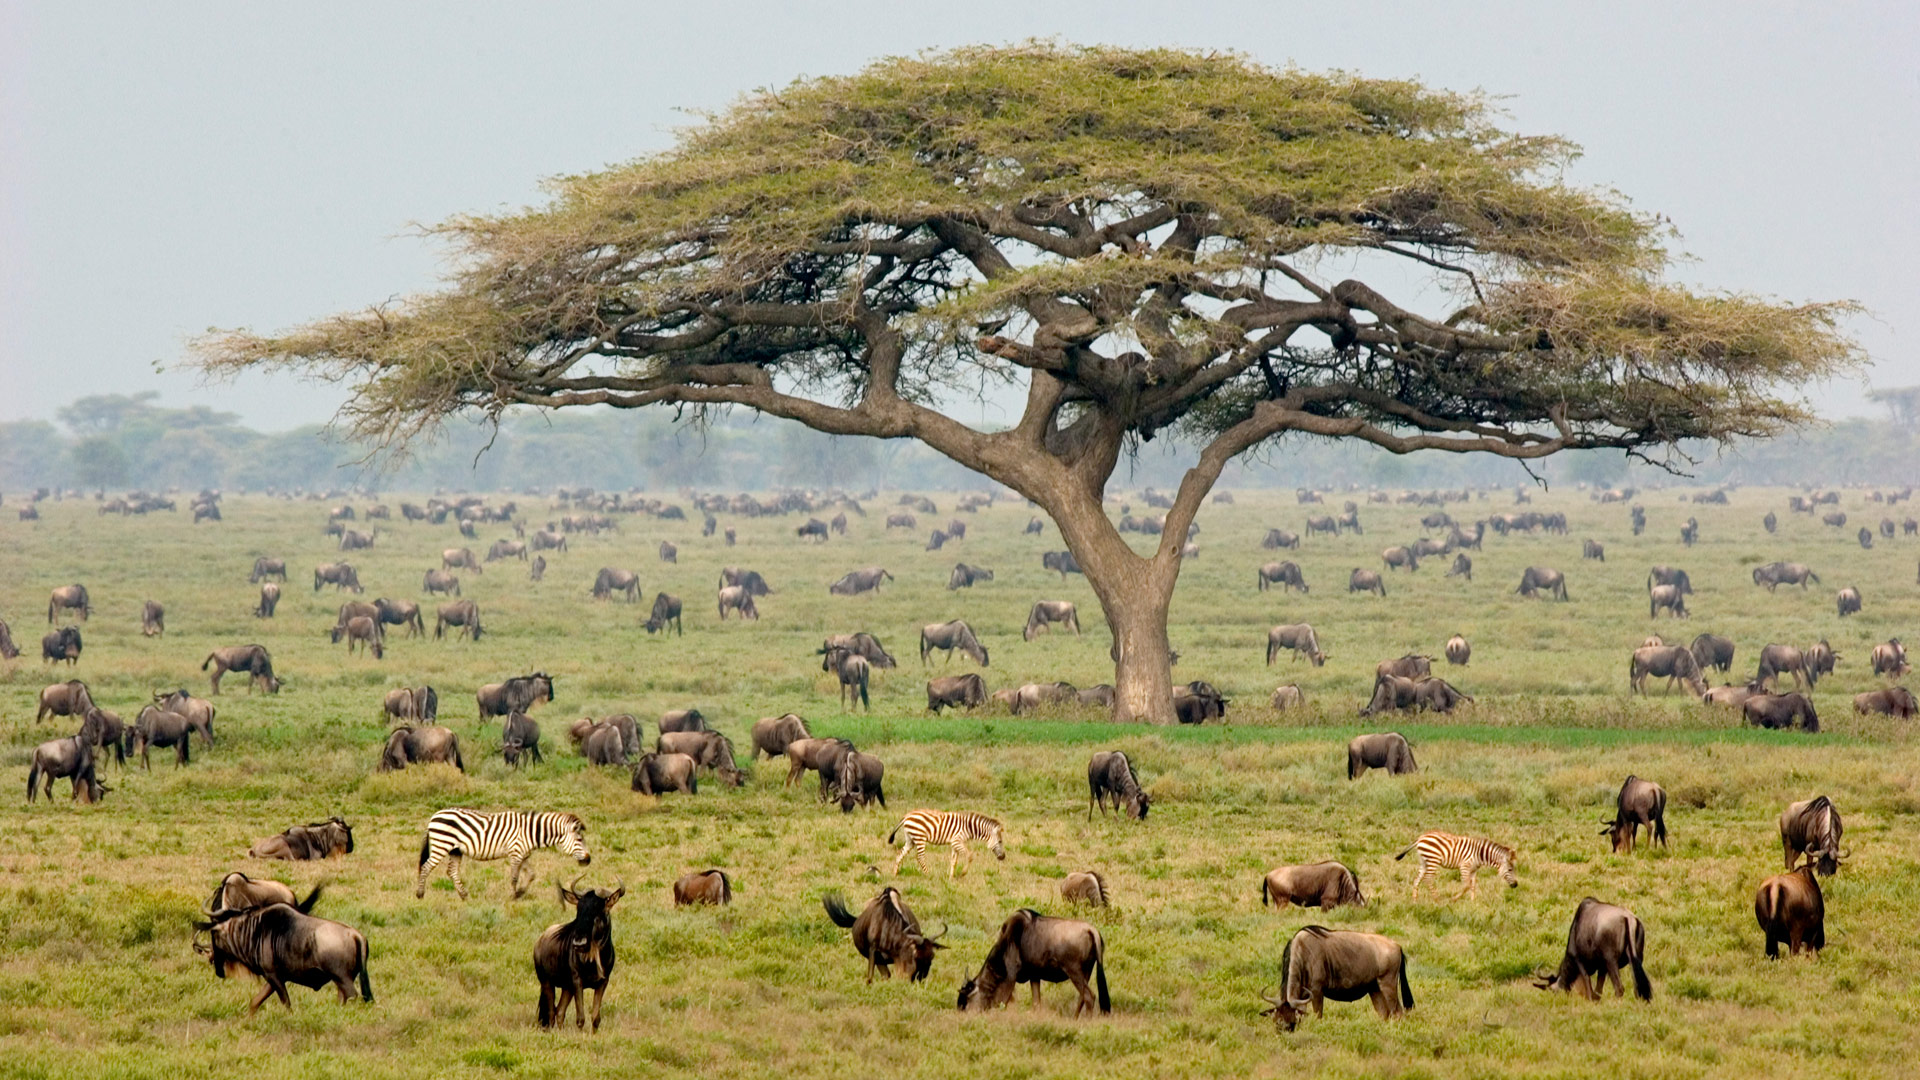 Grazing wildebeests and zebras with an acacia tree in the Serengeti, Tanzania.